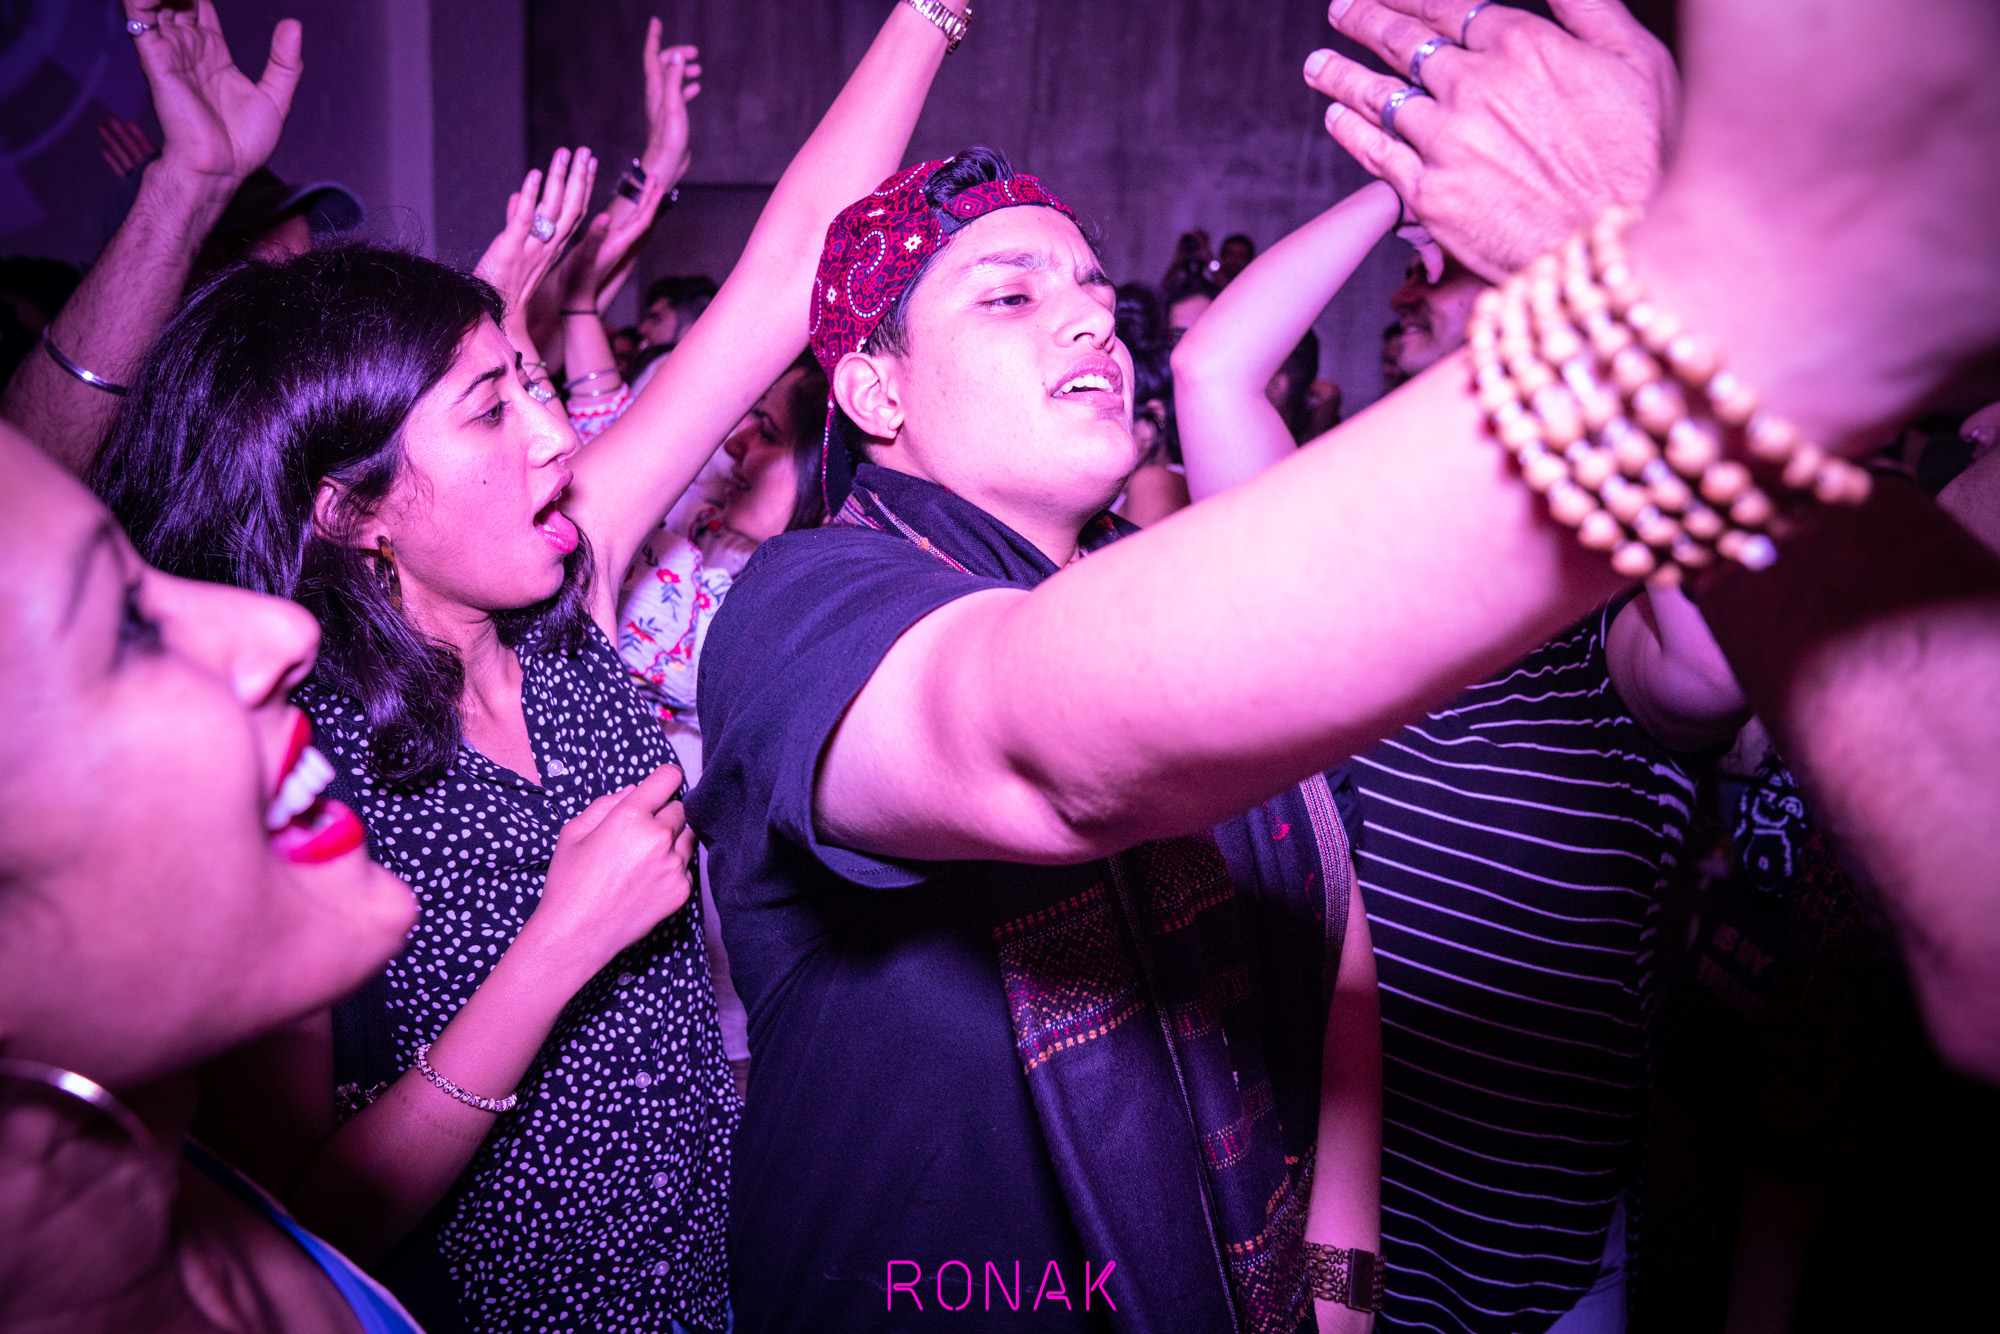 RONAK PARTY NYC-1.jpg